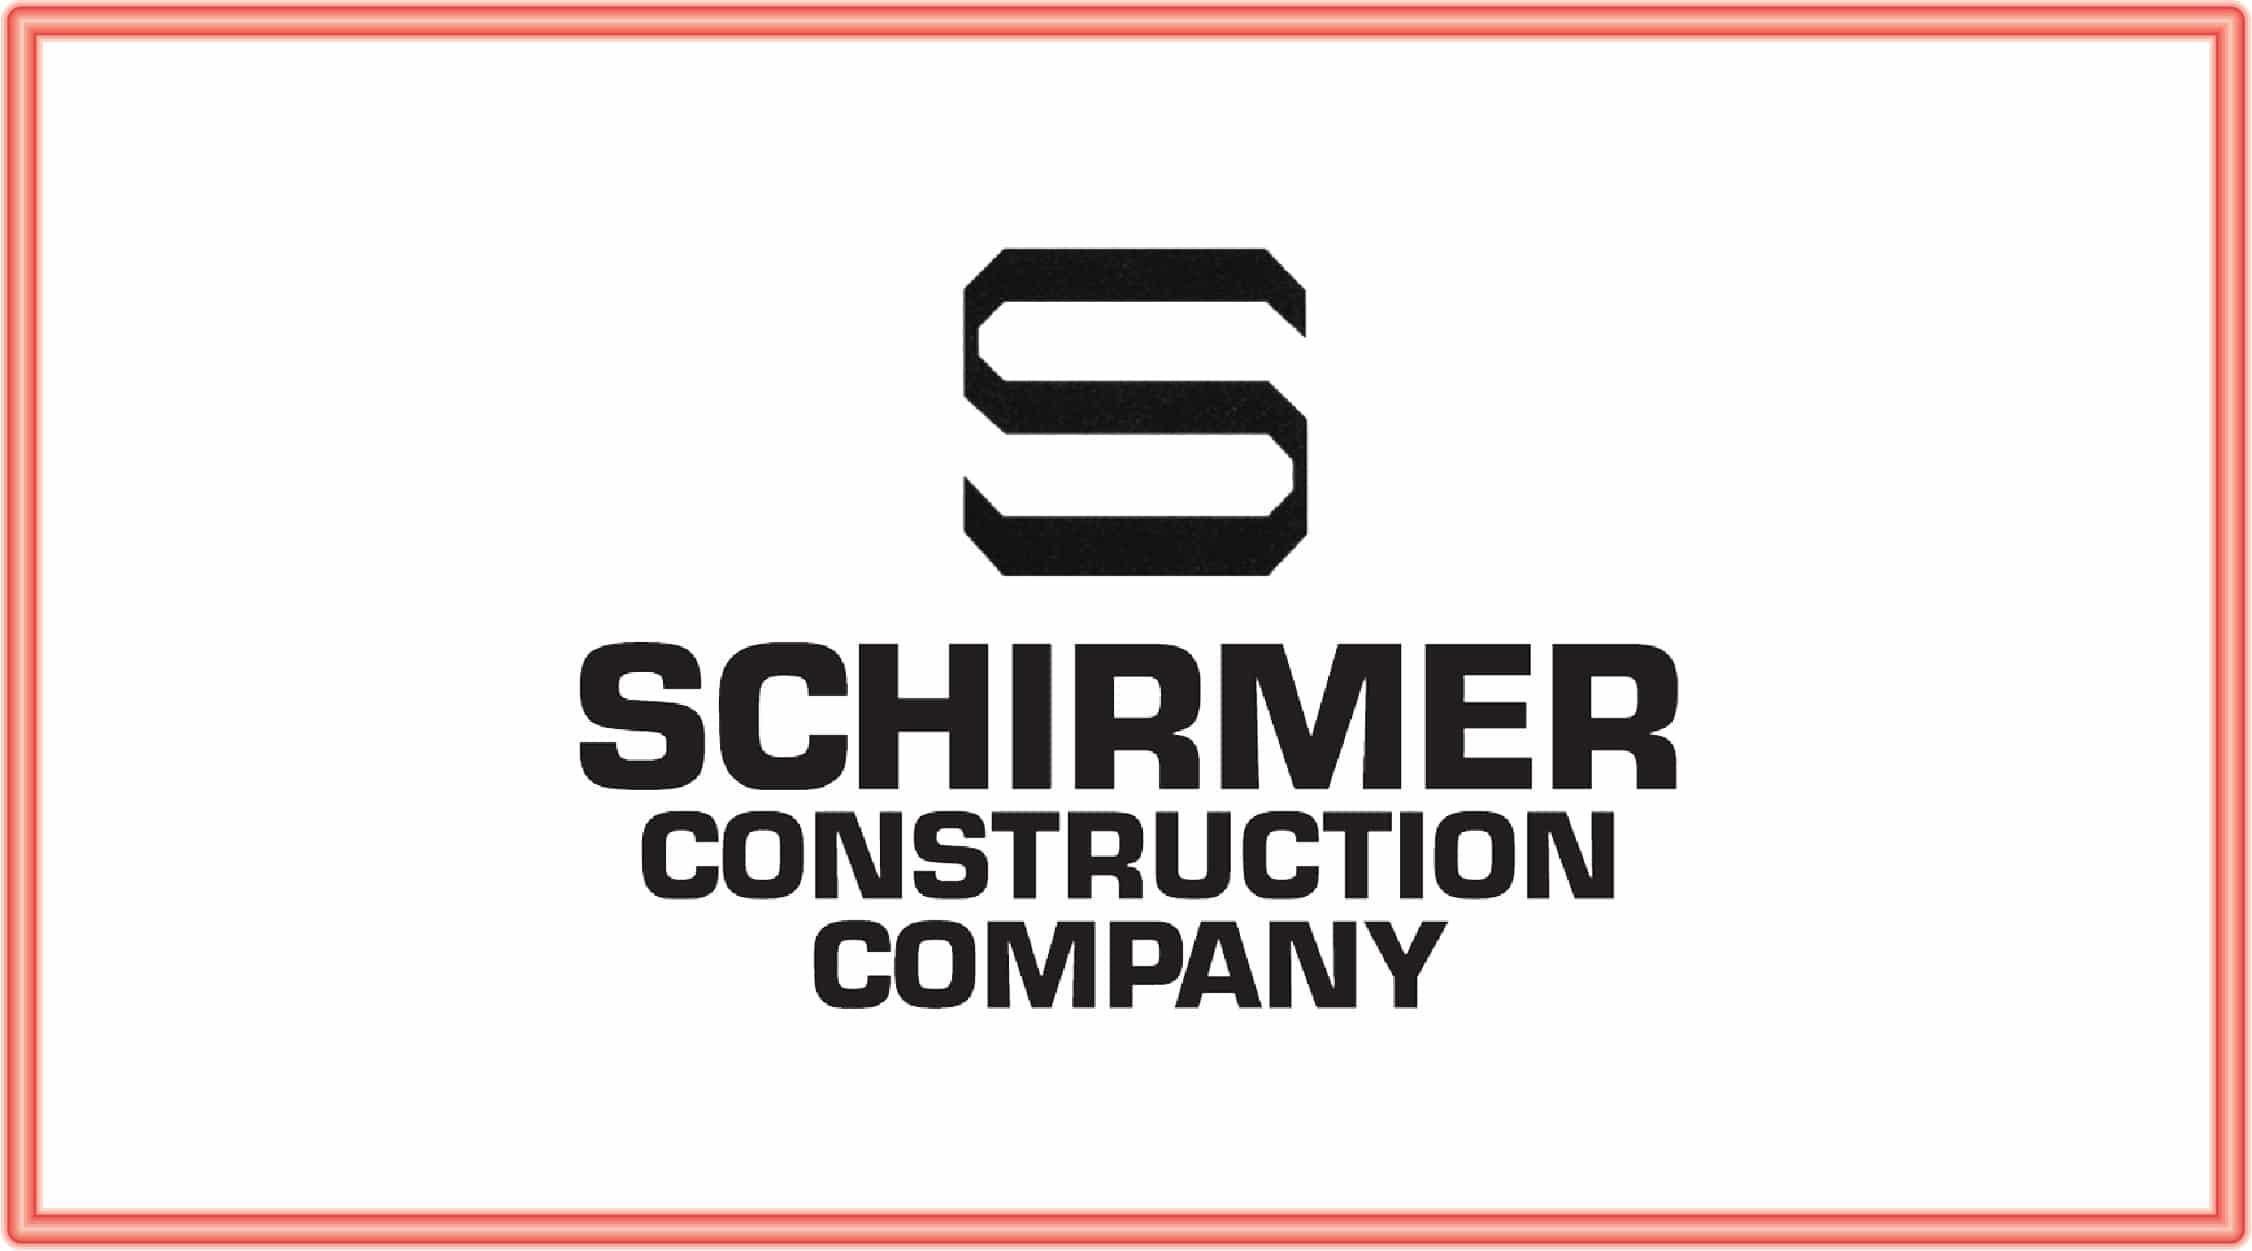 Schirmer Construction